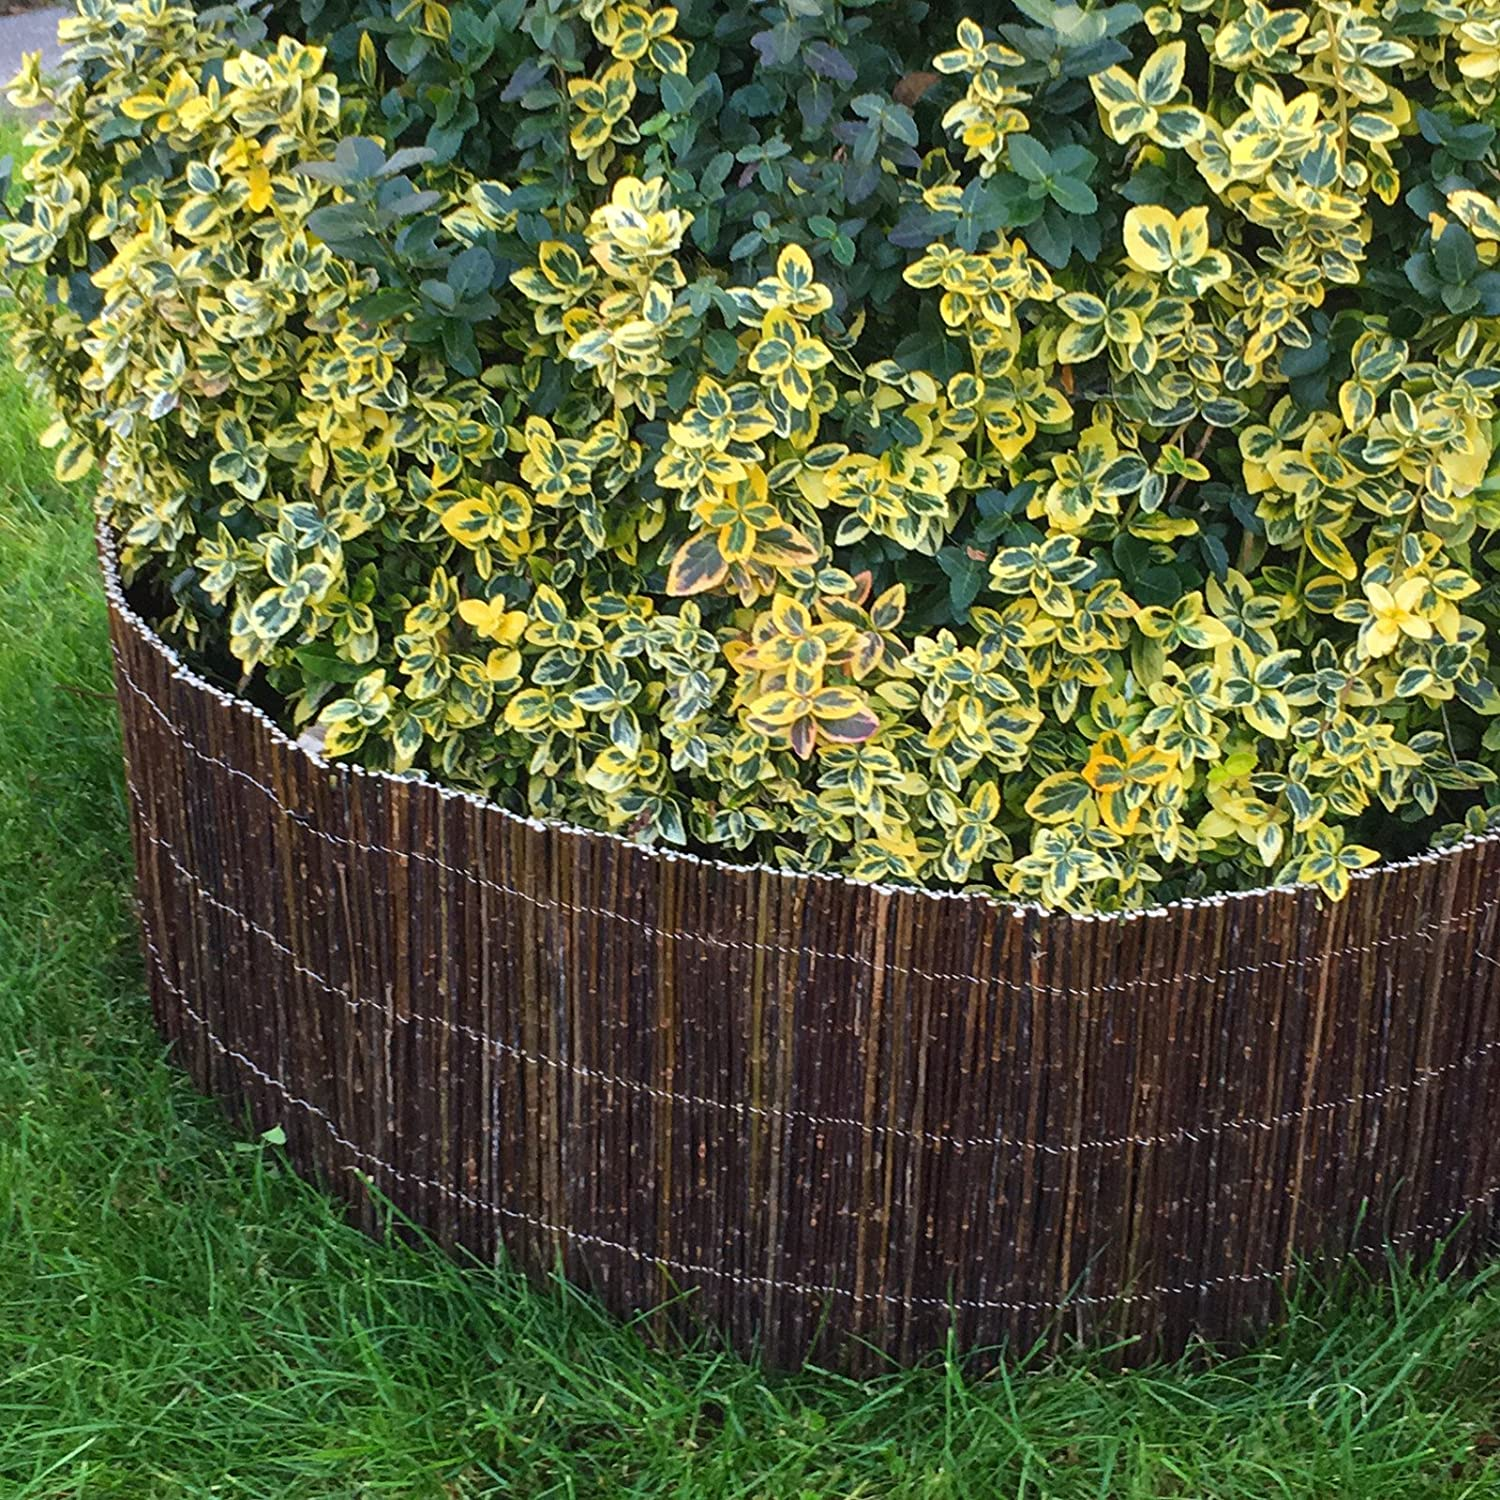 BooGardi bed-framing of willow (height: 30 cm/length: 3 m) · new, variable bed edging in 2 sizes · willow fence for bed border or way demarcation